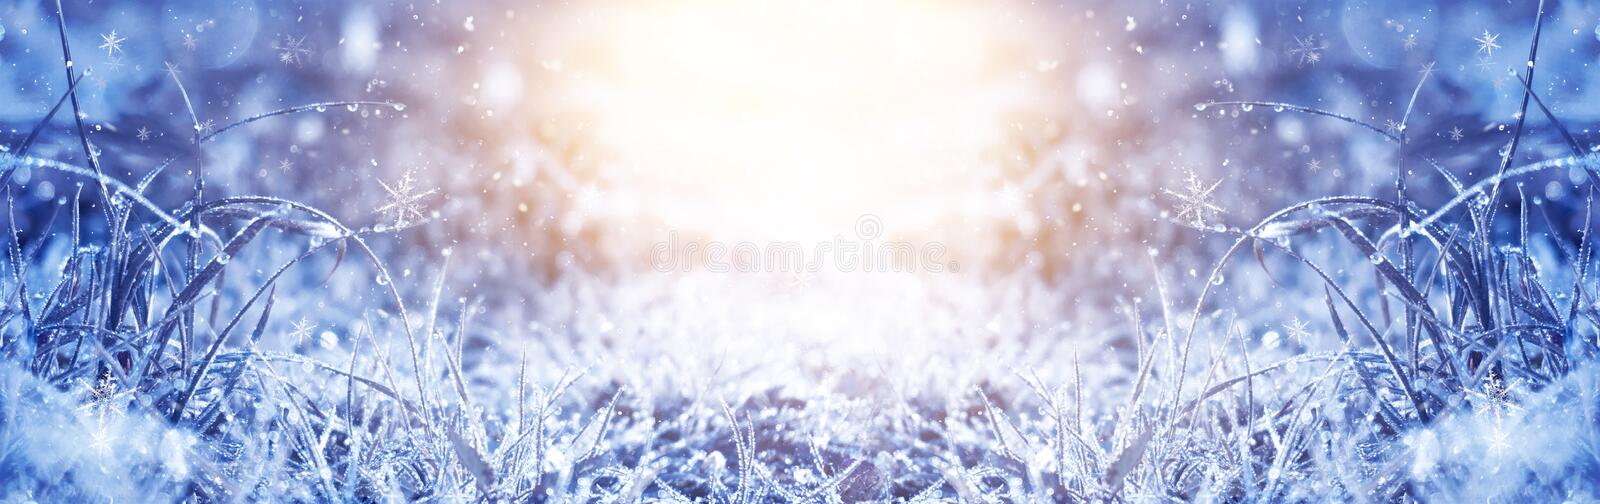 Winter frosty morning. Winter snow background, blue color, snowflakes, sunlight, macro. royalty free illustration